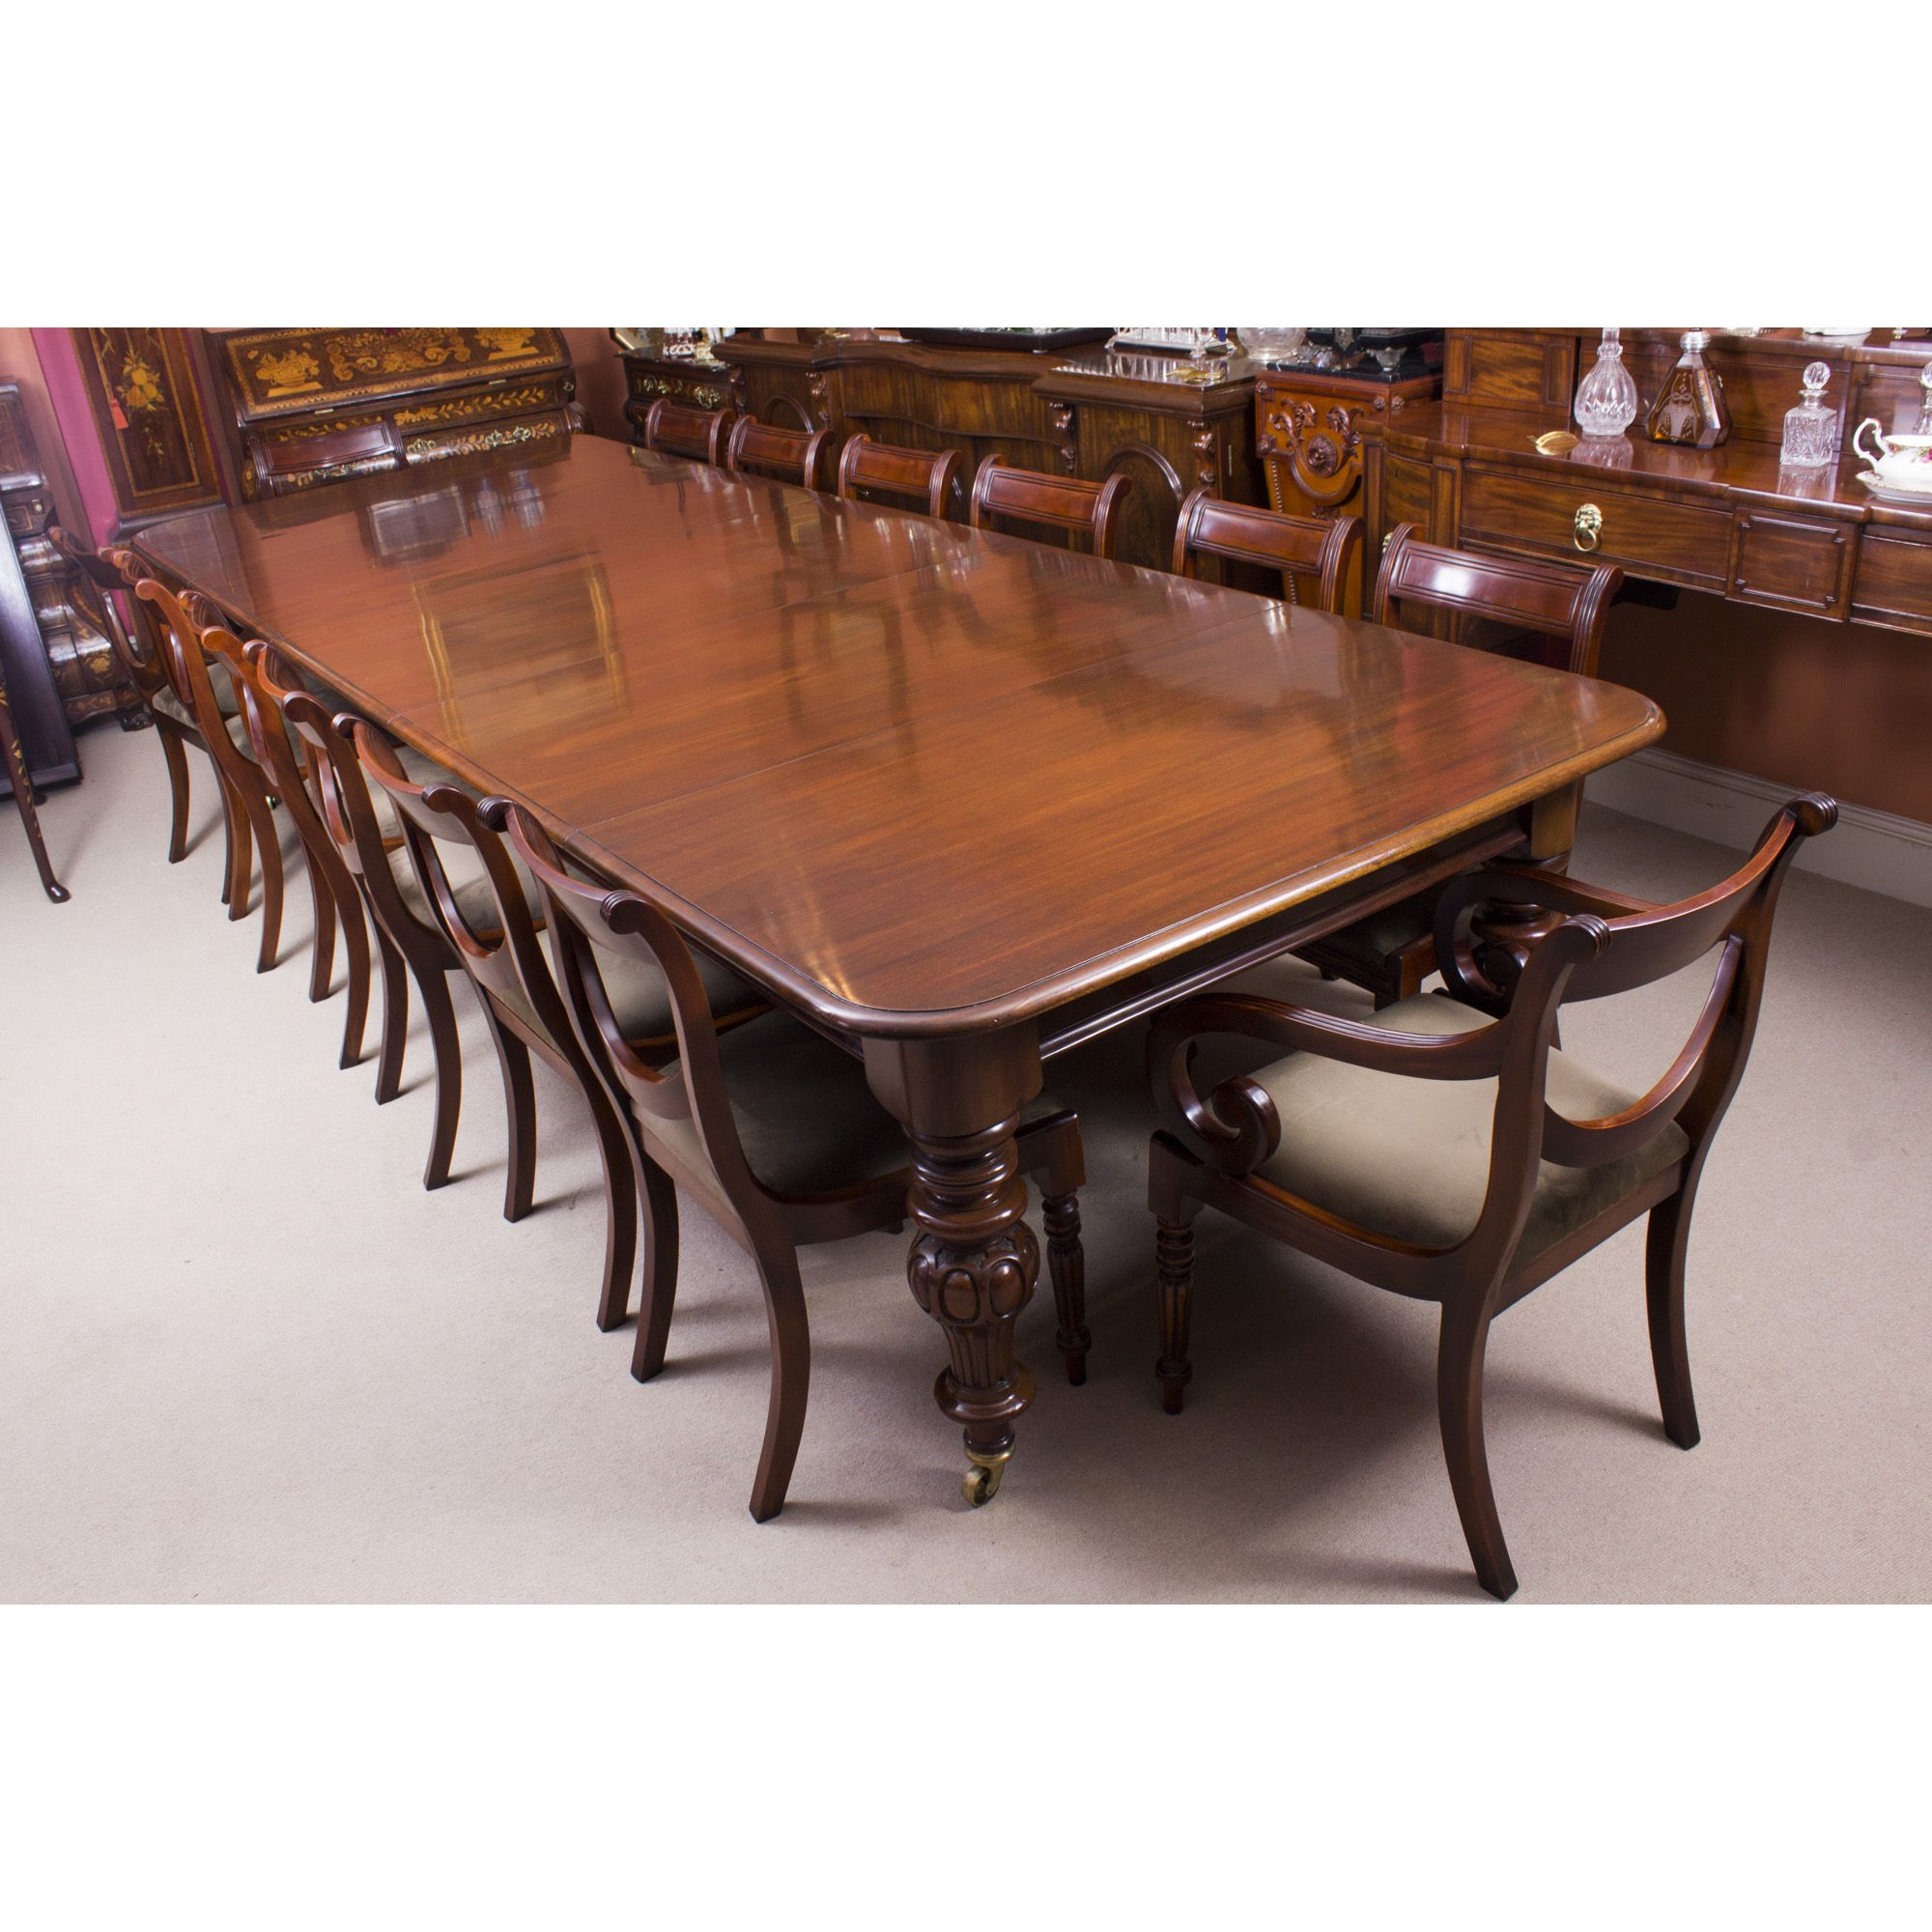 Antique Victorian 12 Ft Flame Mahogany Dining Table 14 Chairs C